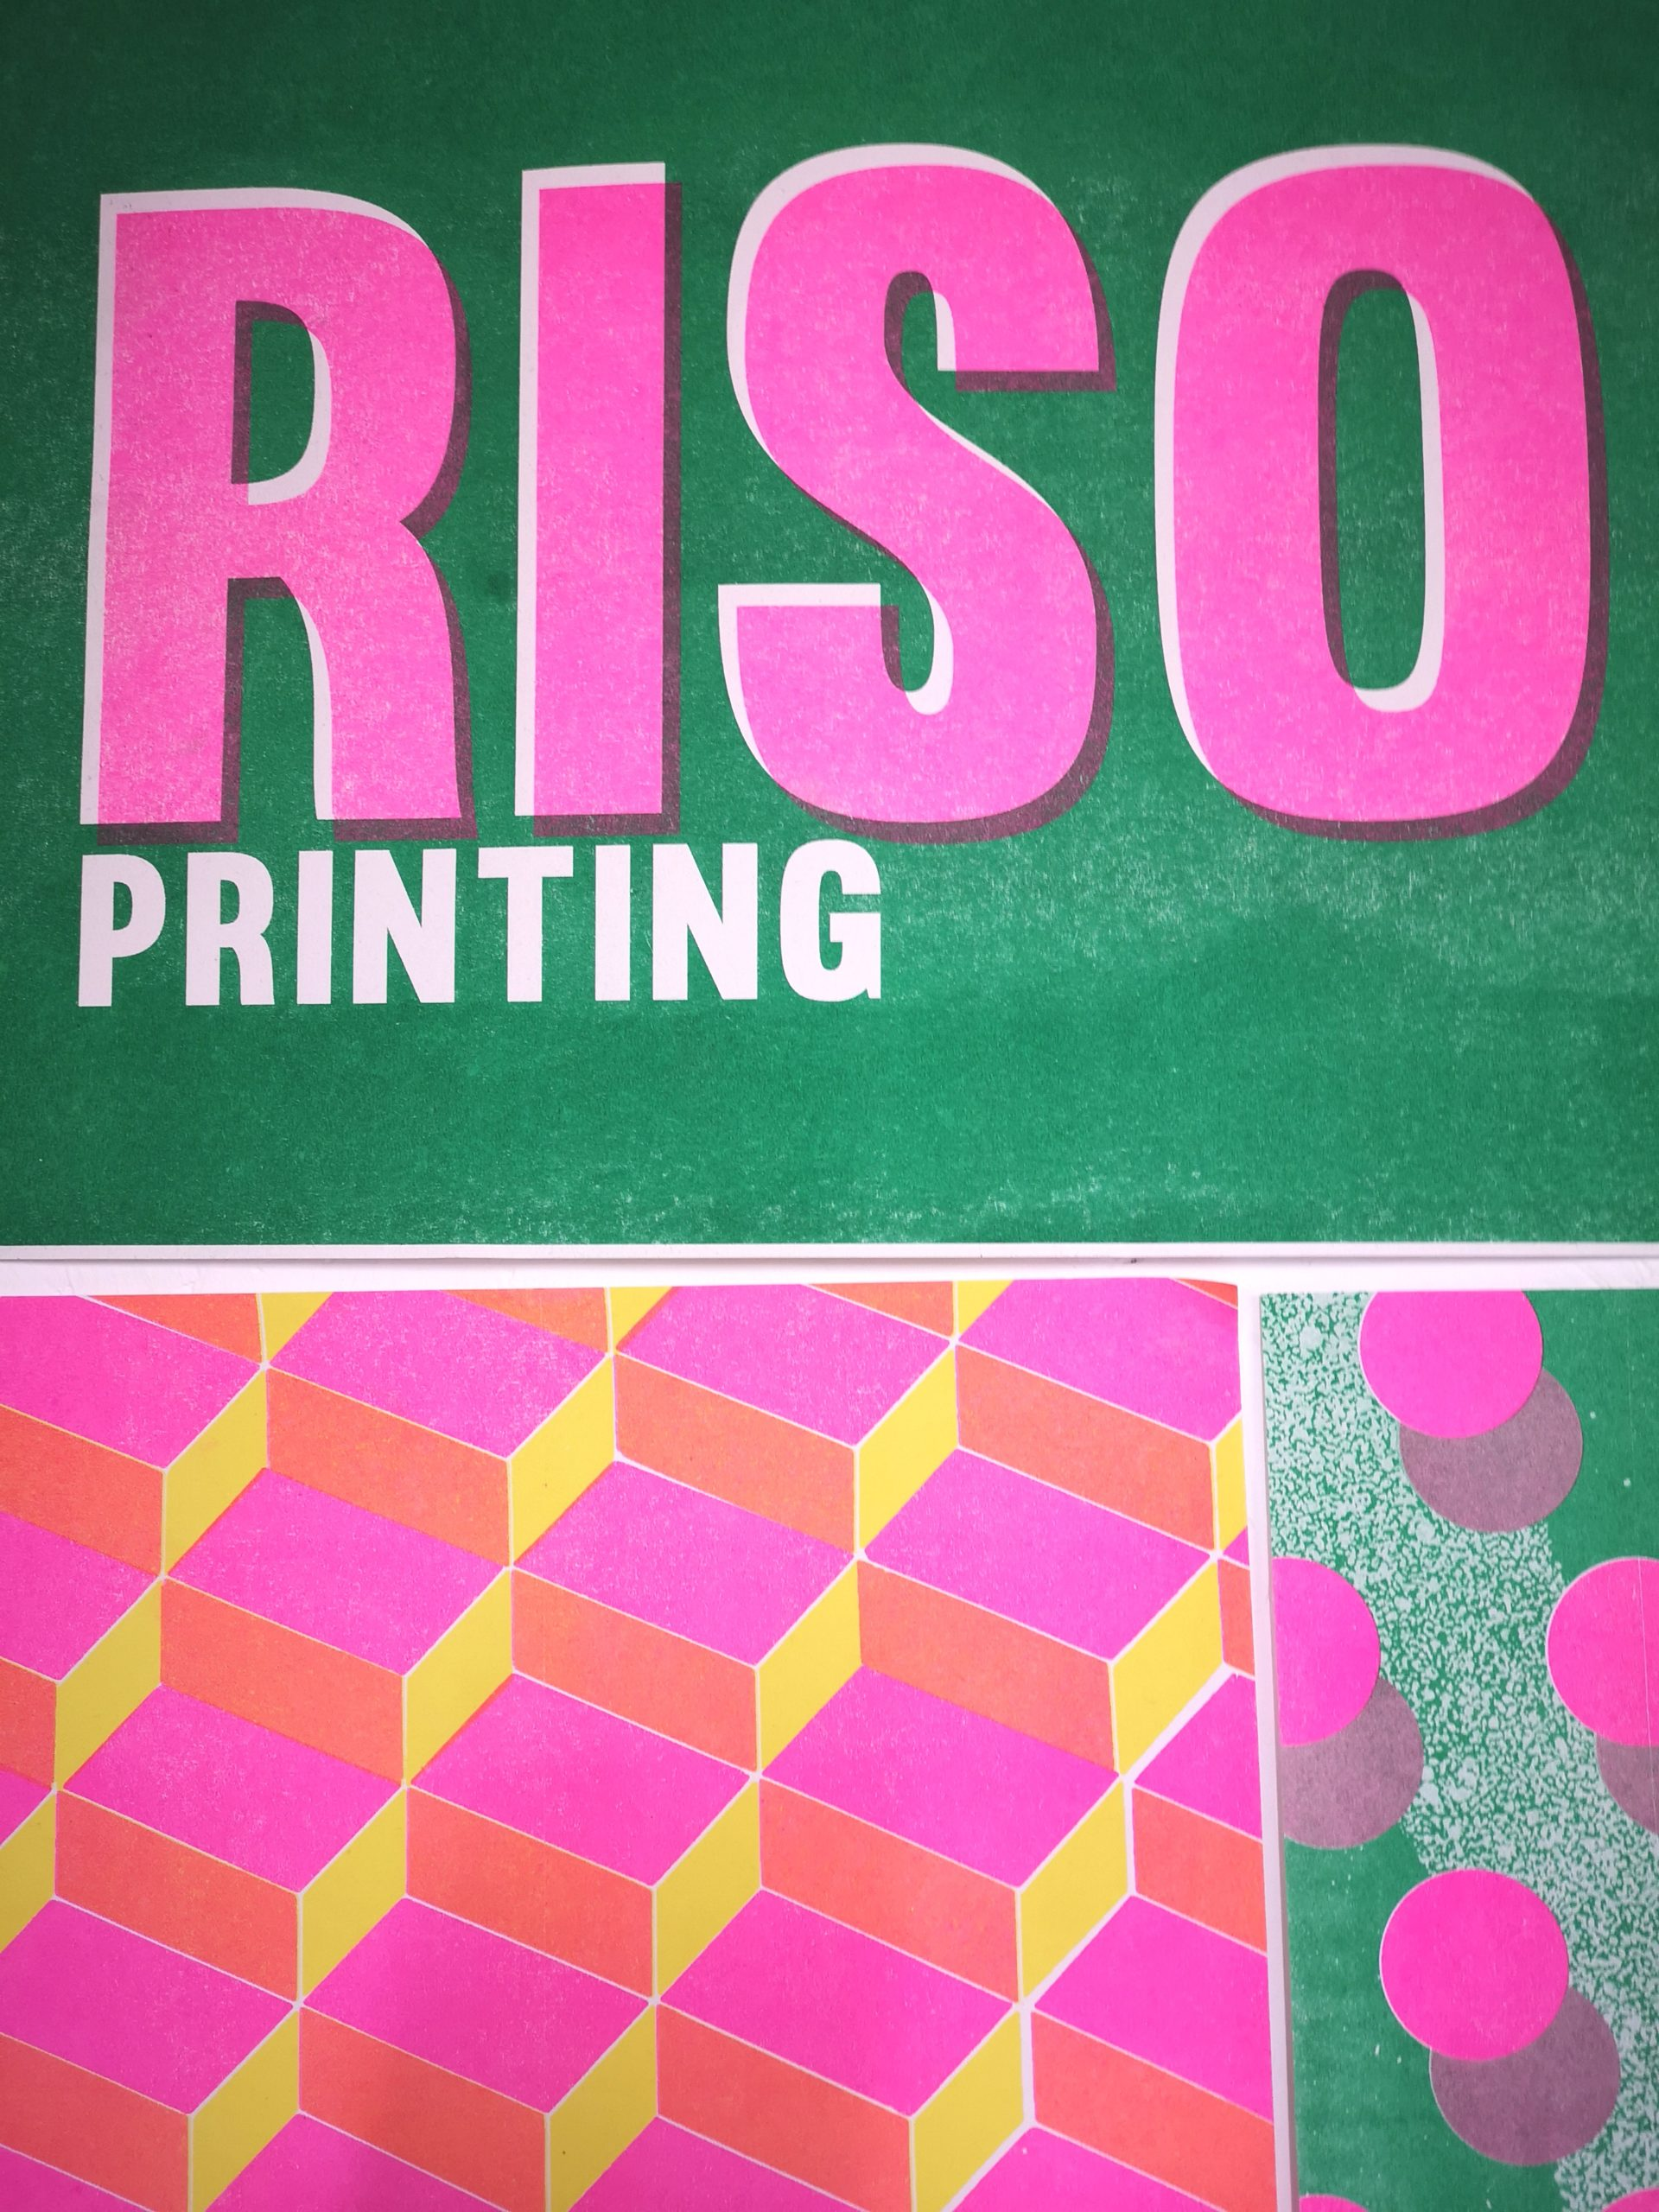 vibrant green and pink riso printing poster